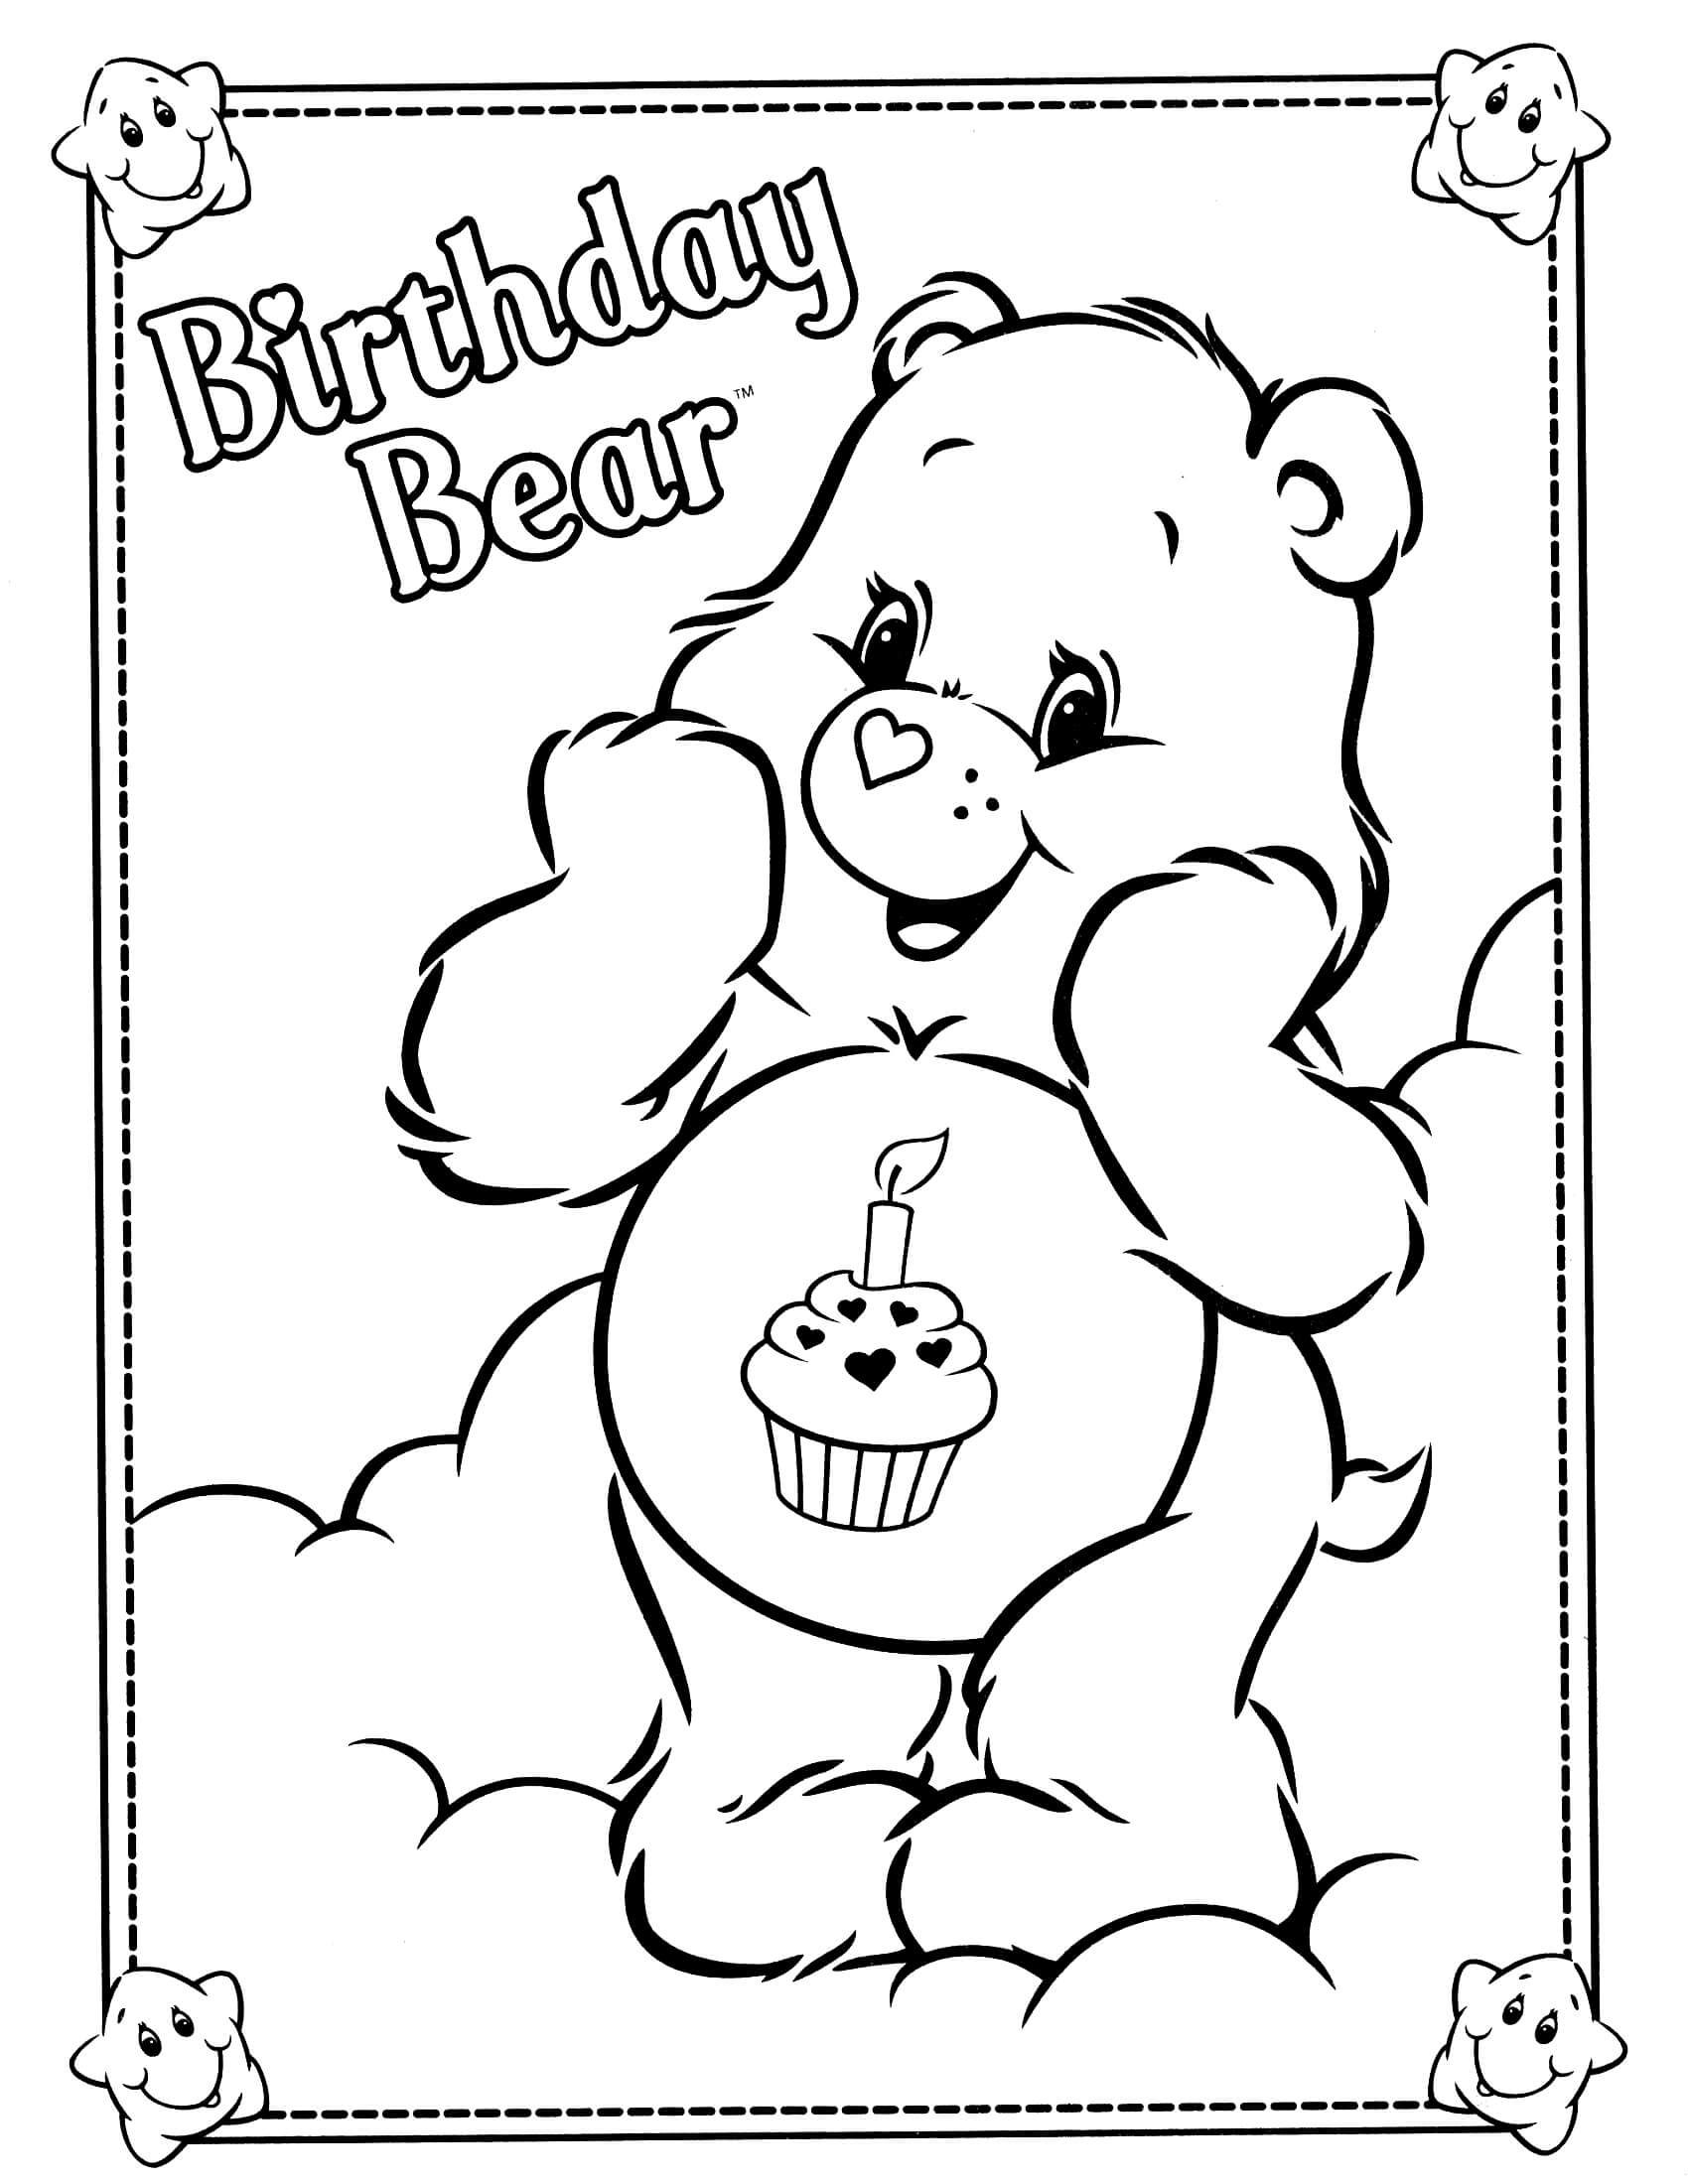 disney cars coloring pages - care bears coloring page 33